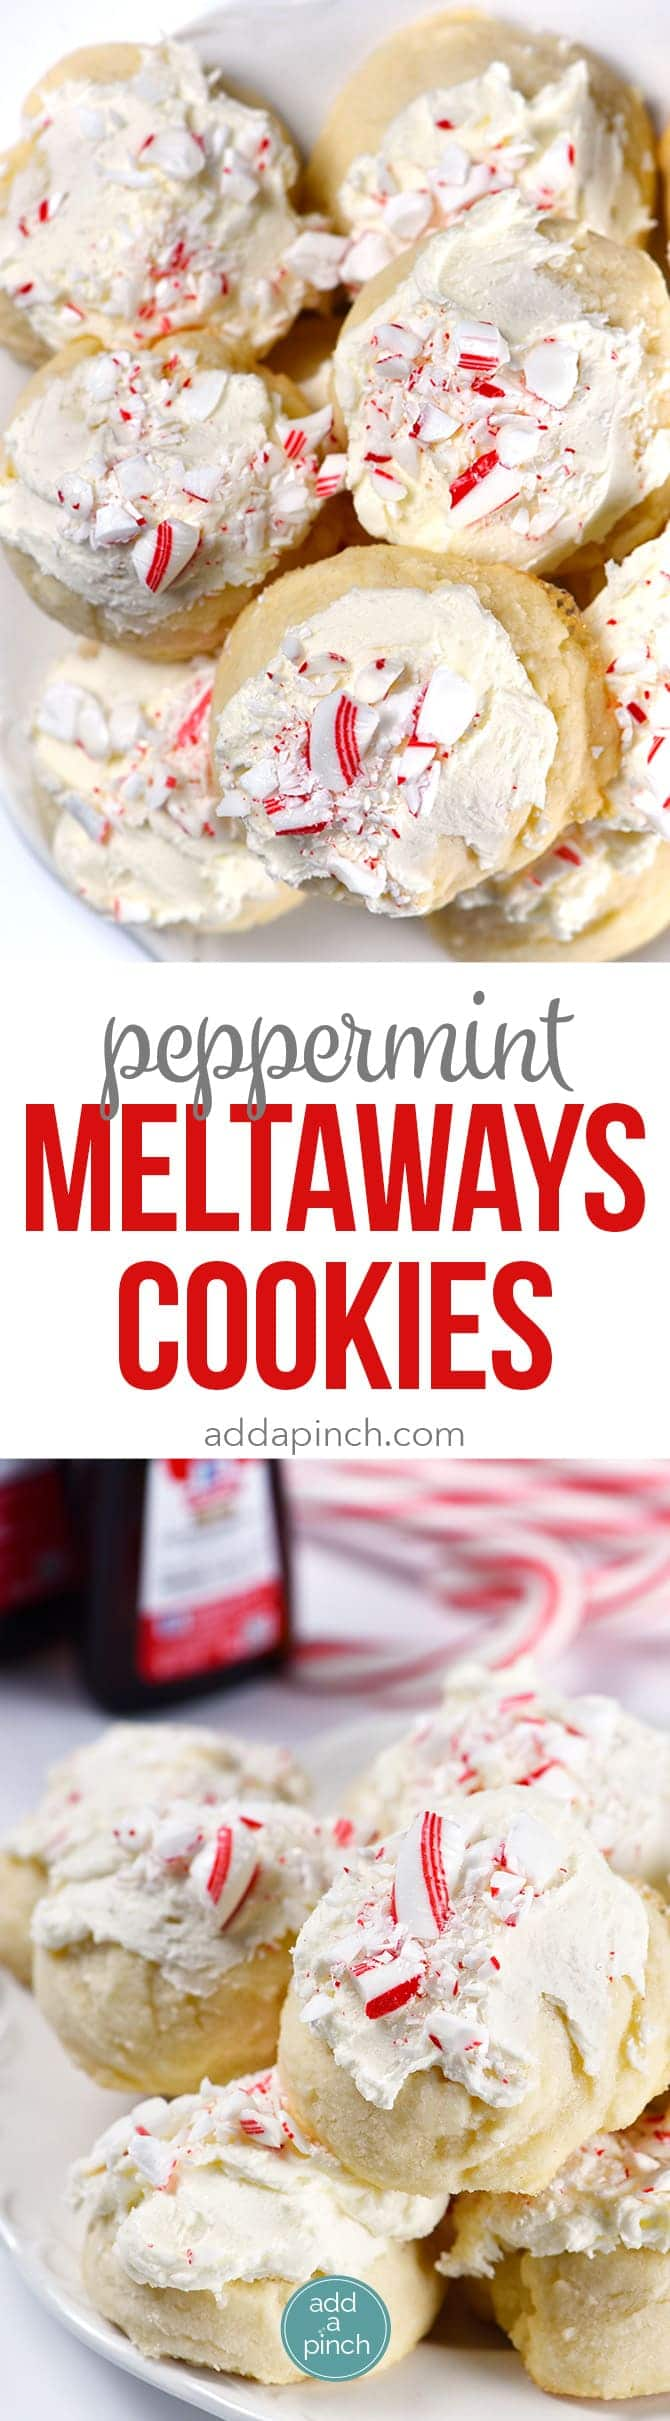 Peppermint Meltaways Cookies Recipe - Peppermint Meltaways Cookies make a festive addition to your holiday cookie platter! They are a Christmas tradition! // addapinch.com